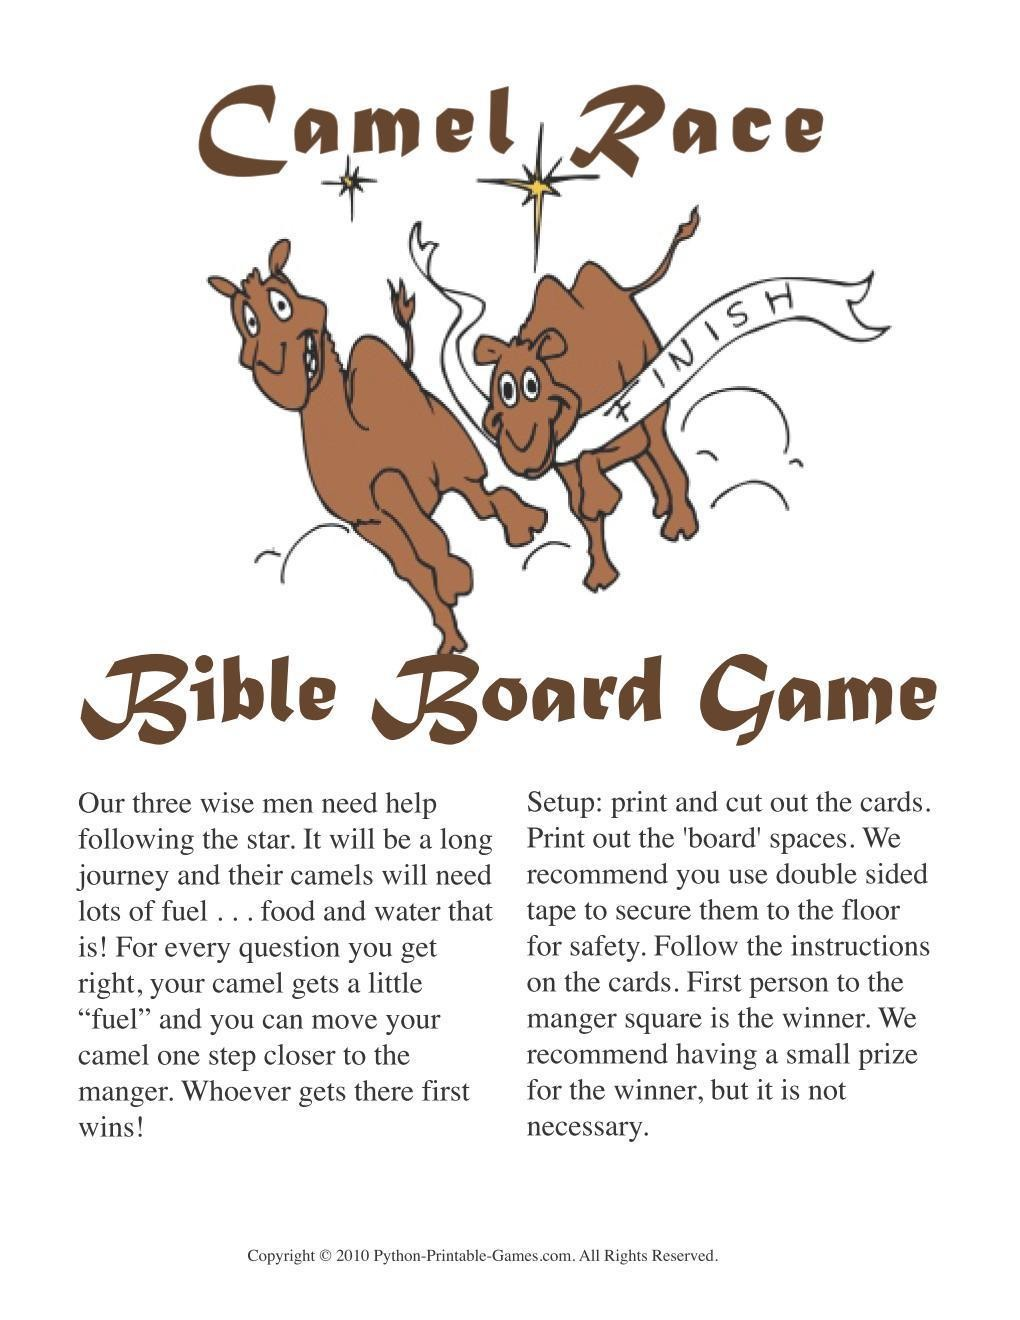 Christmas Bible Trivia.Christmas Camel Race Bible Trivia Board Game